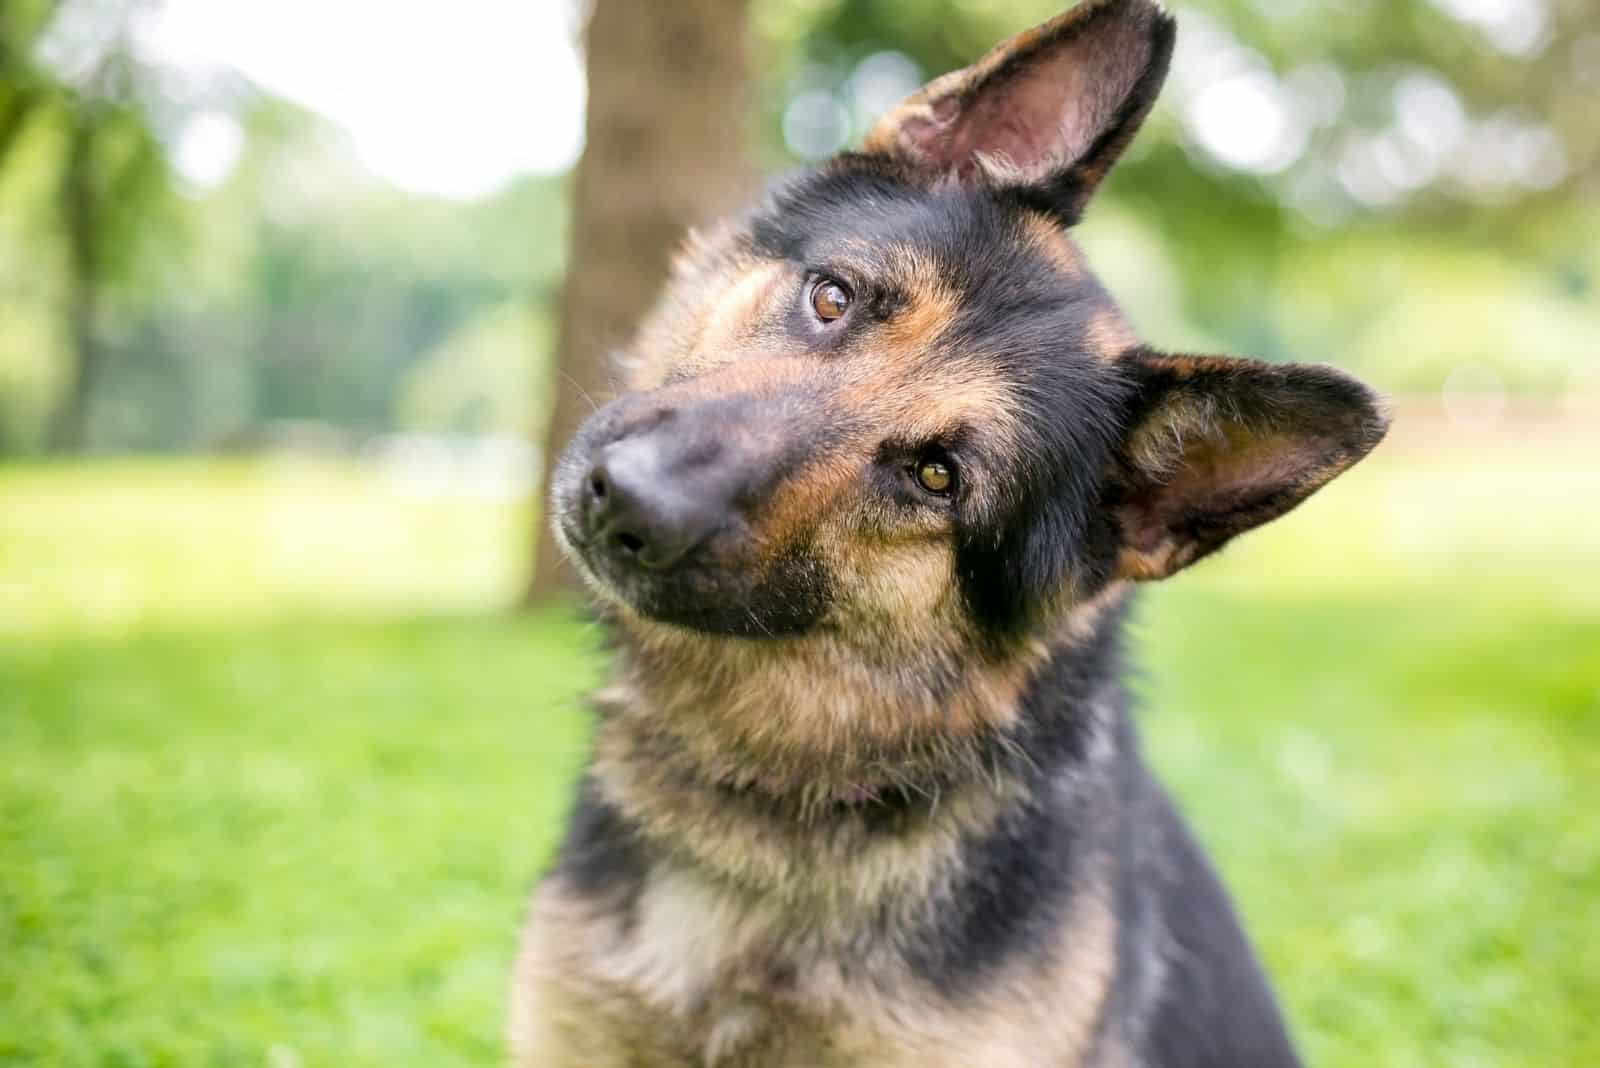 german shepherd listening to the sound raising his ear up sitting outdoors